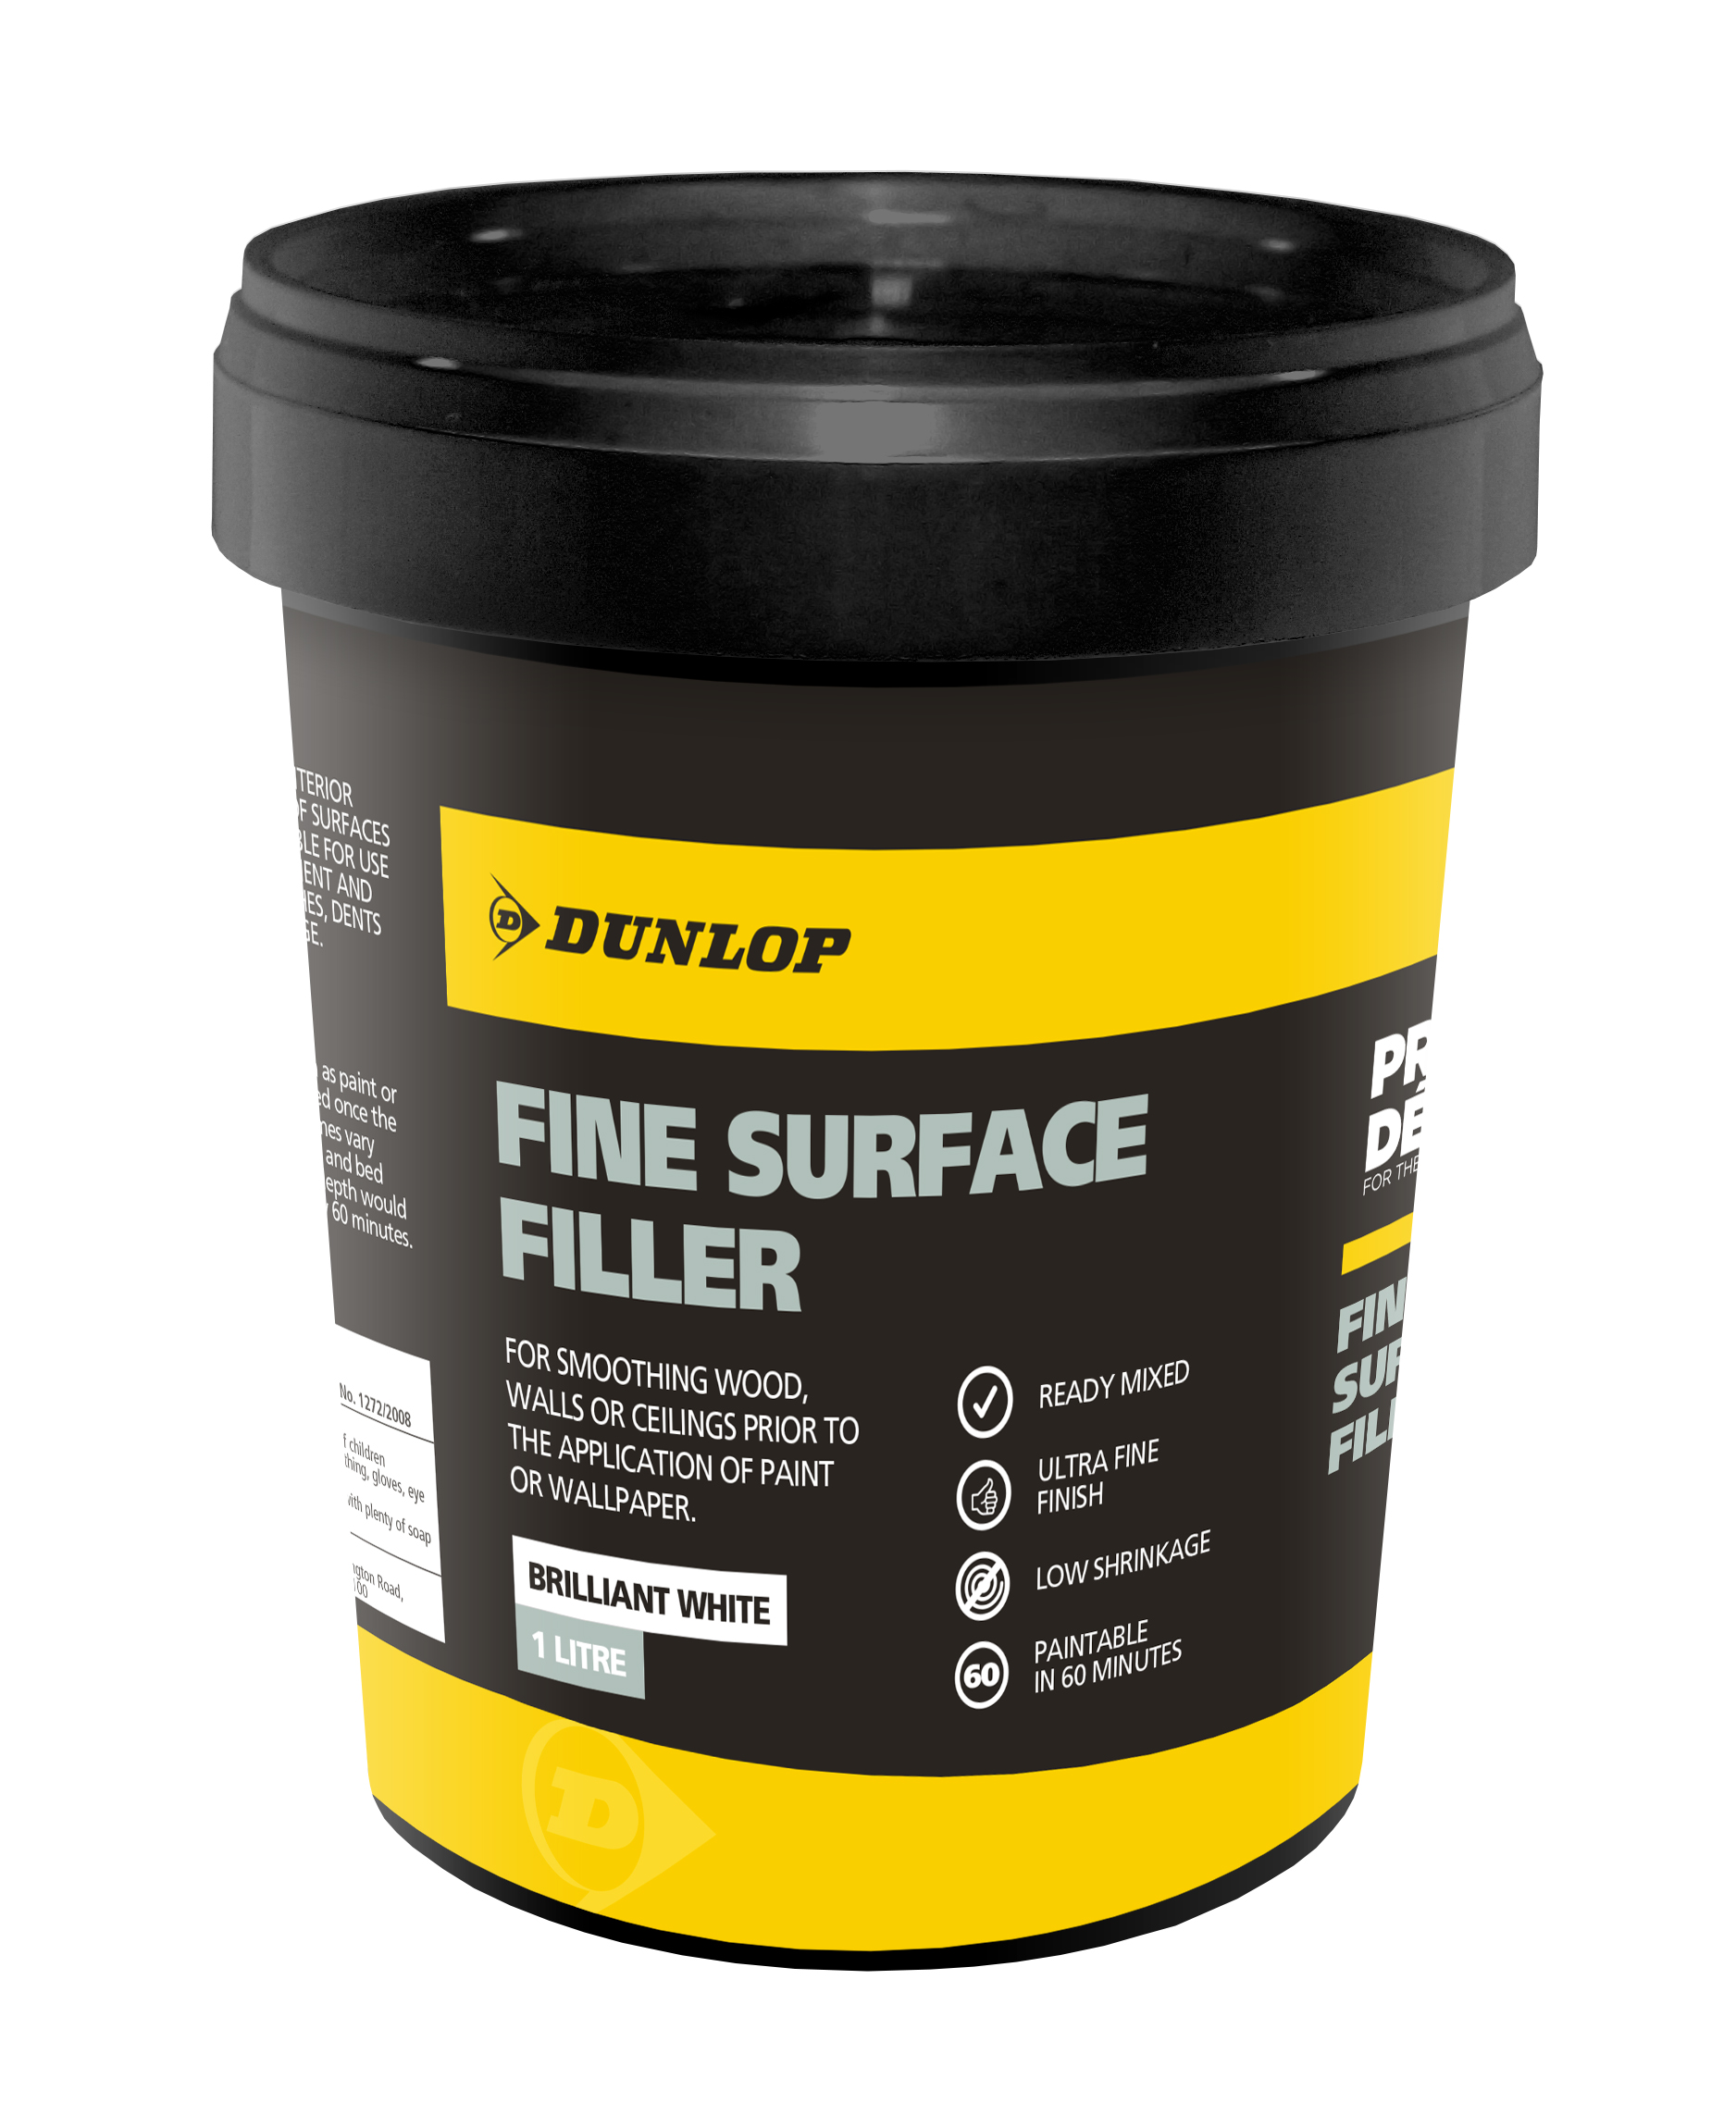 Dunlop Pro Décor Fine Surface Filler.